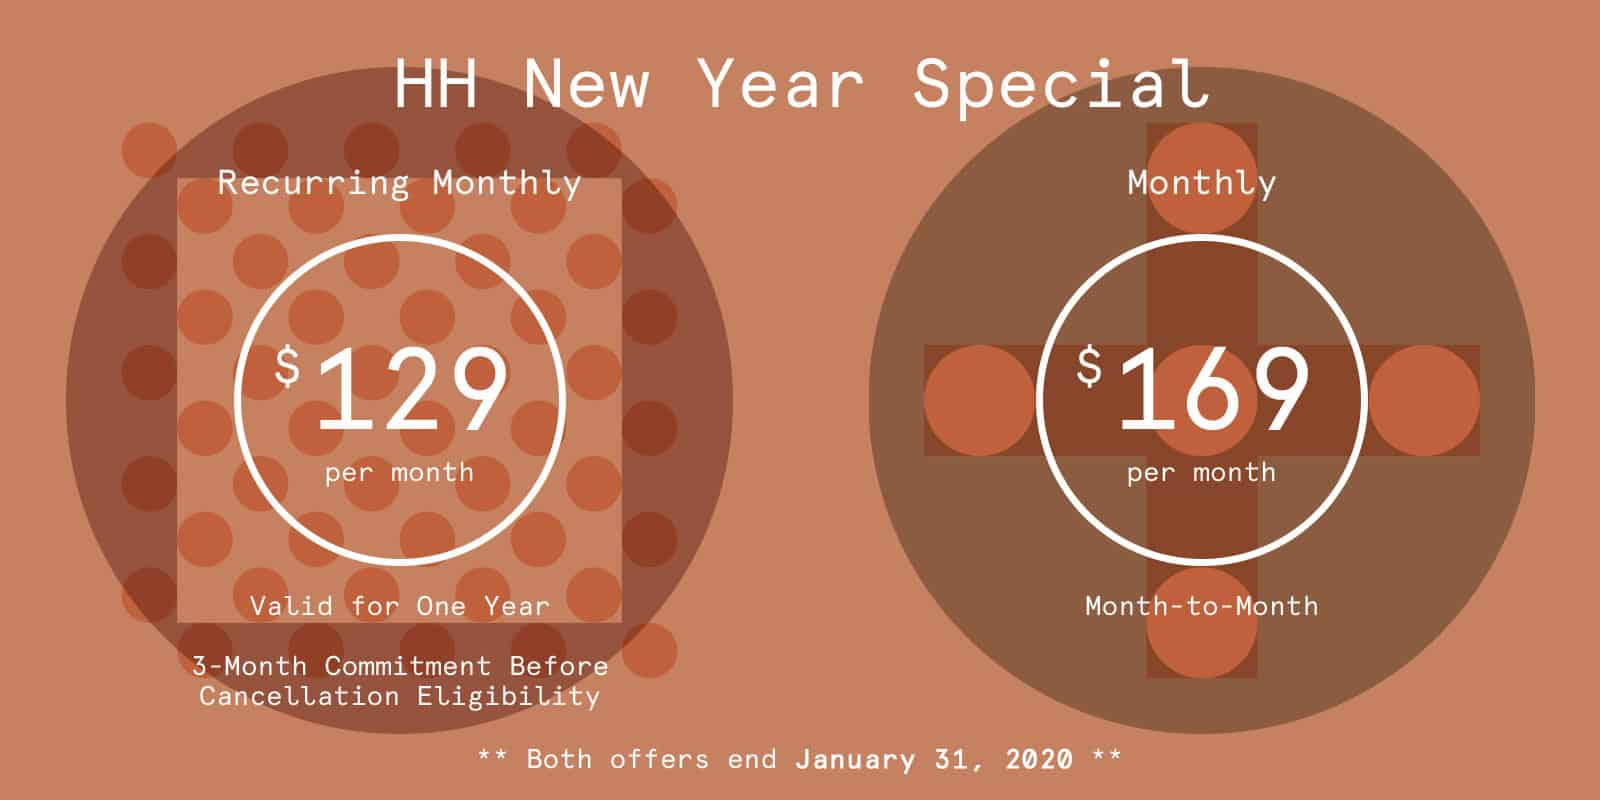 HH New Year Special